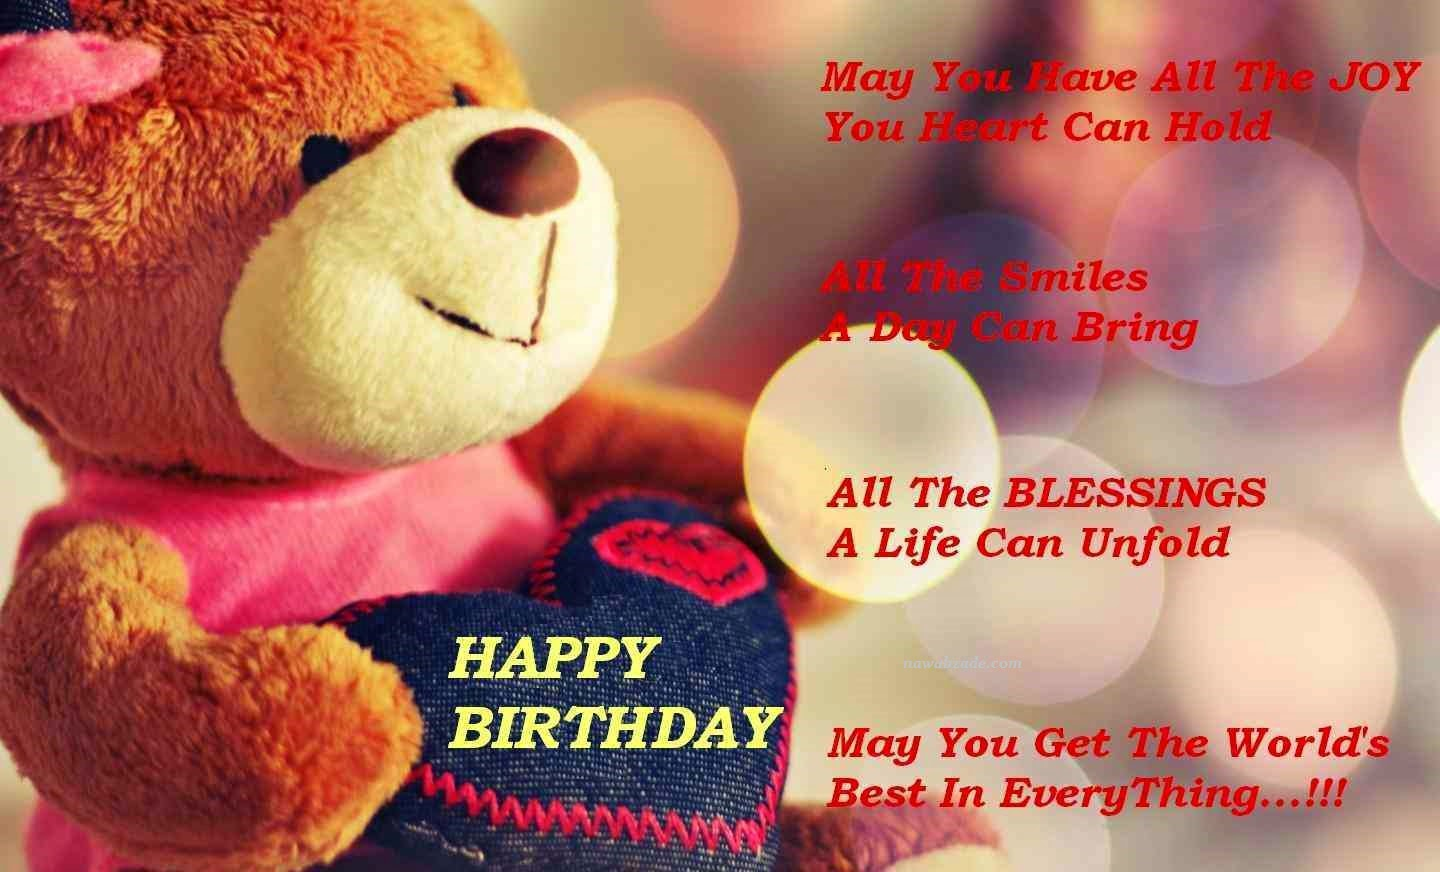 Best Birthday Wishes Quotes Happy Birthday Wishes Quotes For Best Friend  This Blog About